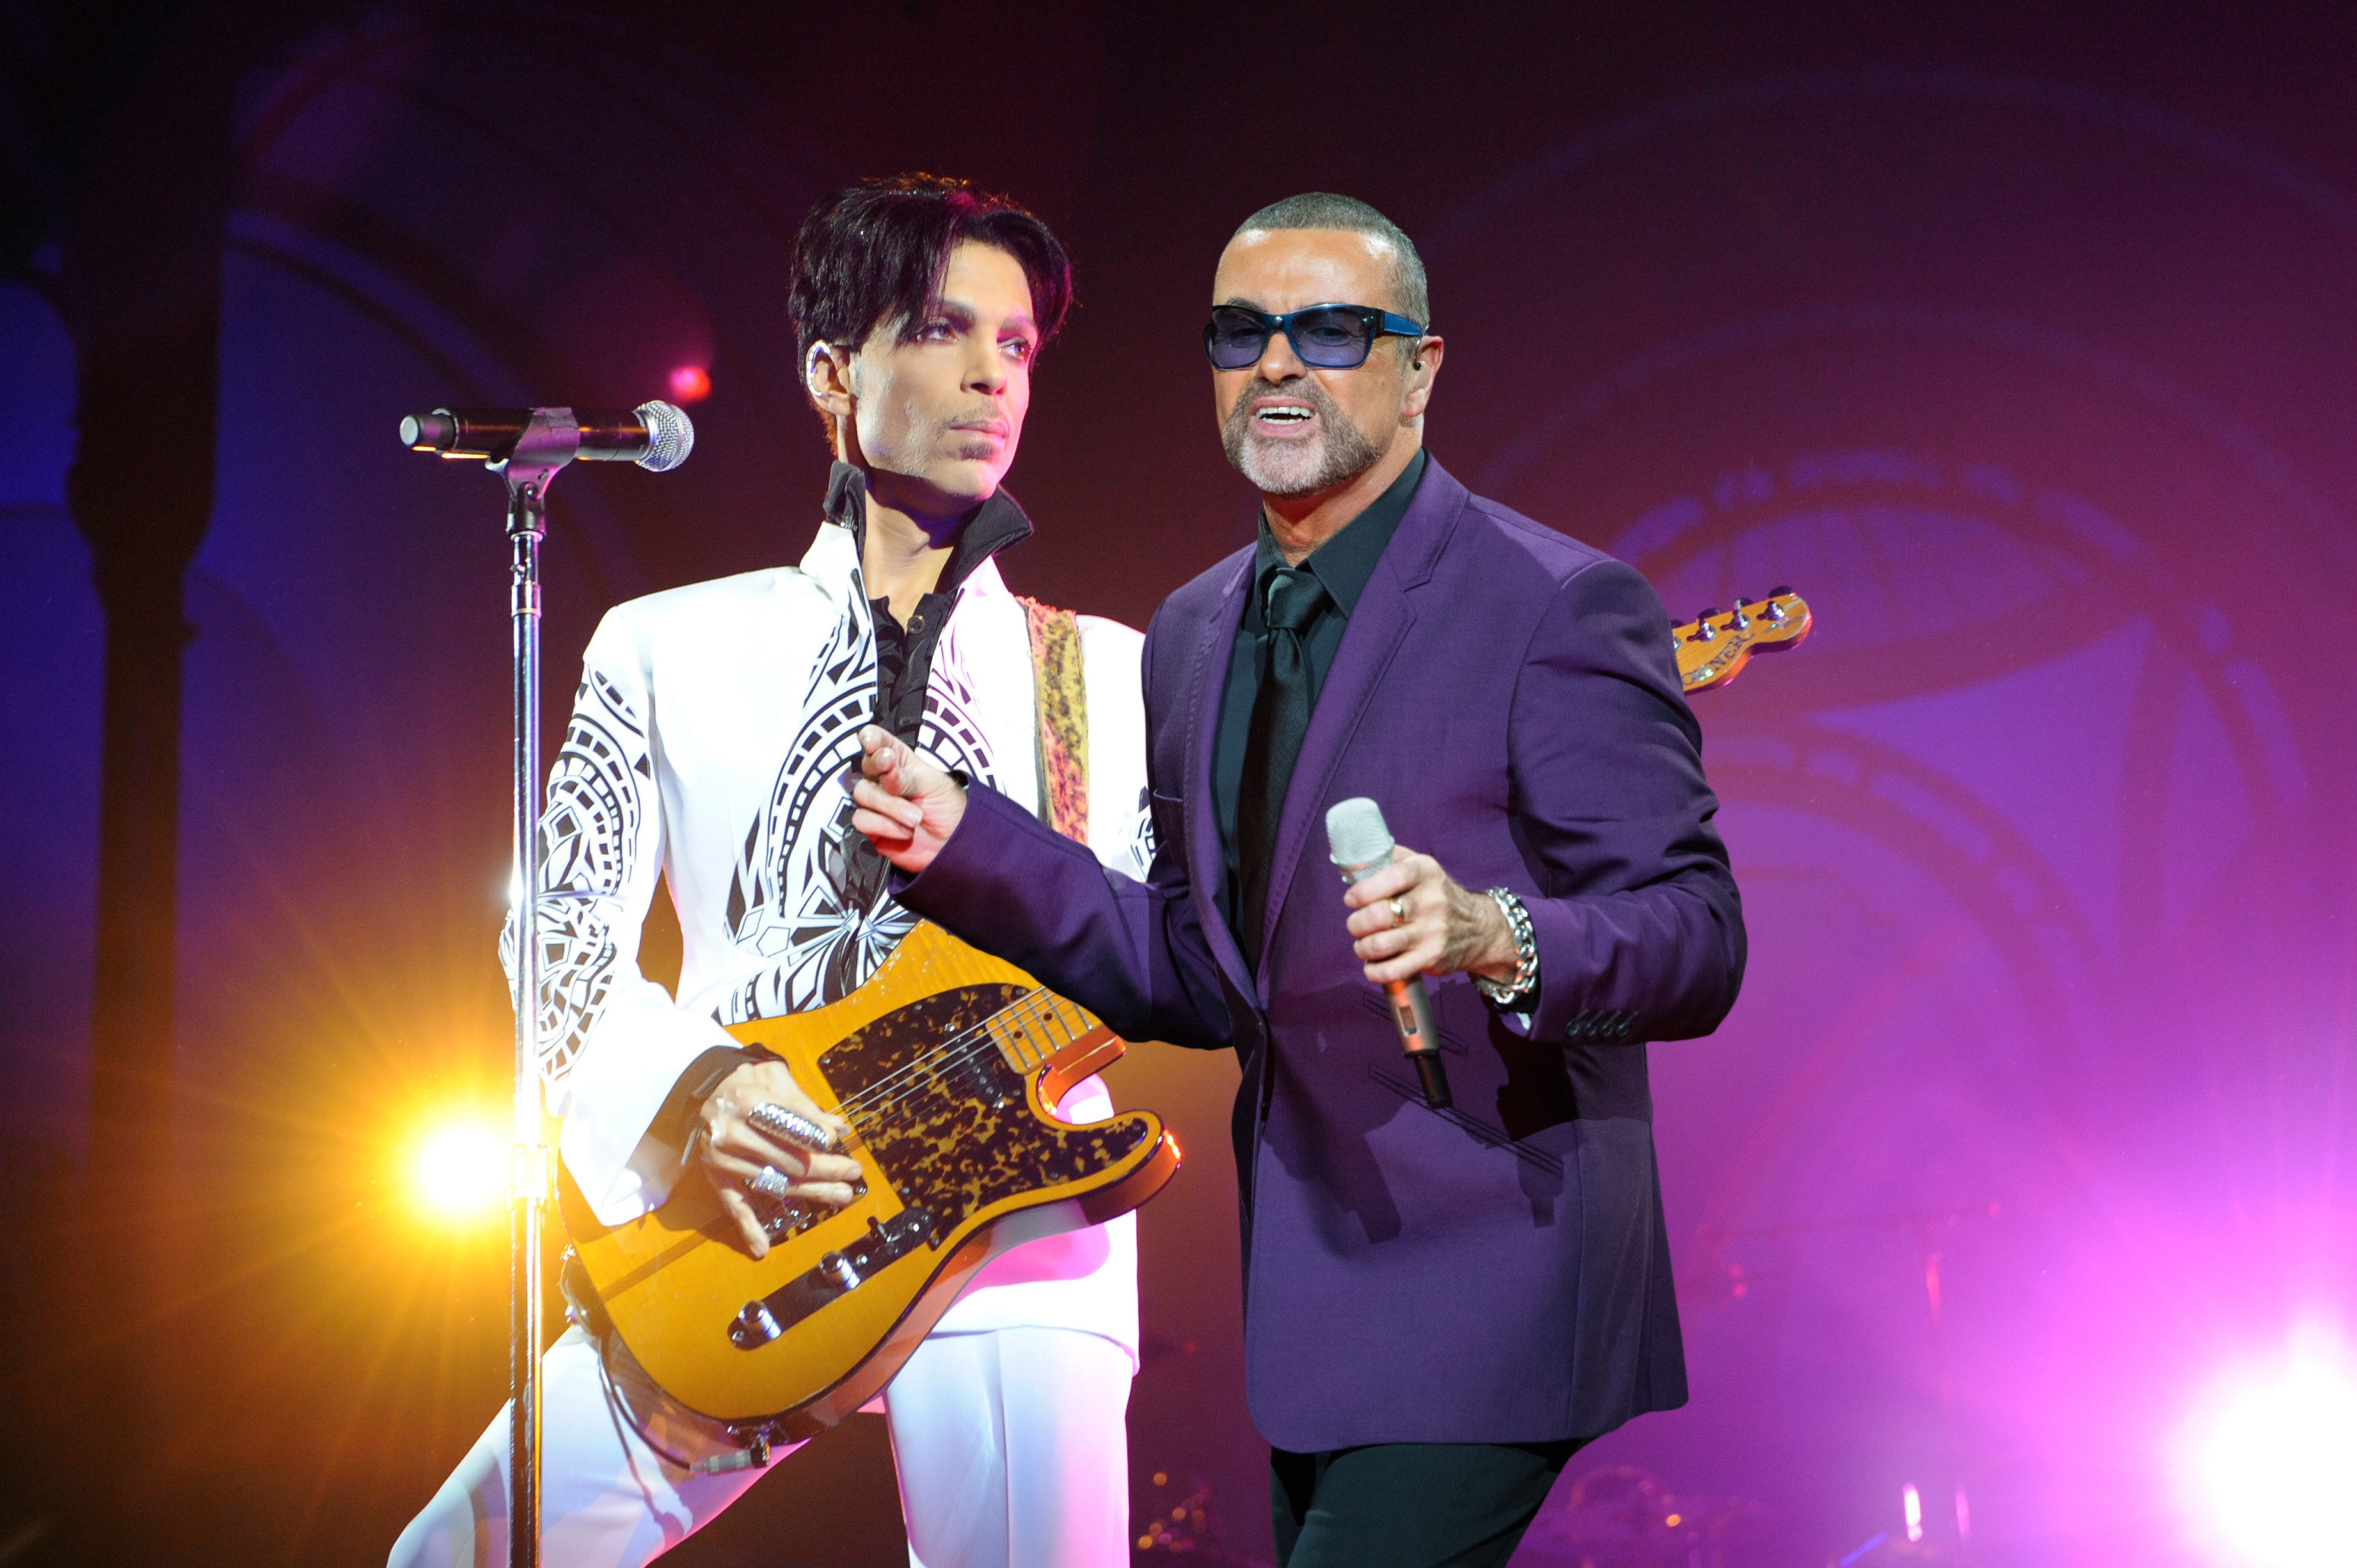 Prince And George Michael Will Be Honored During The 59th Annual Grammys